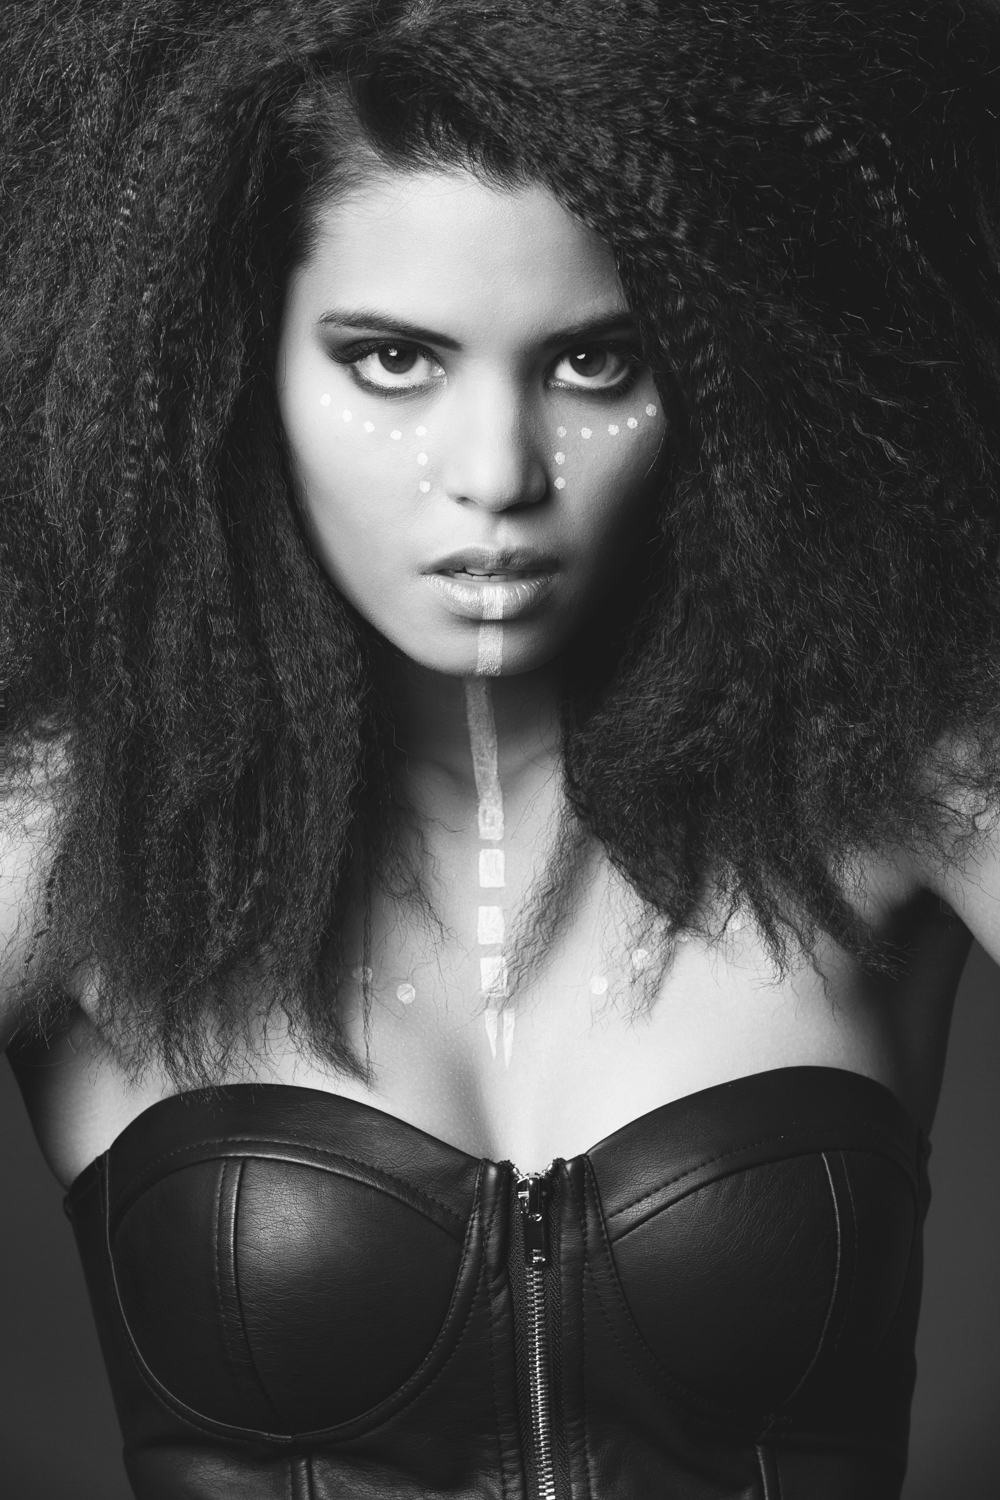 Black and Withe Beauty